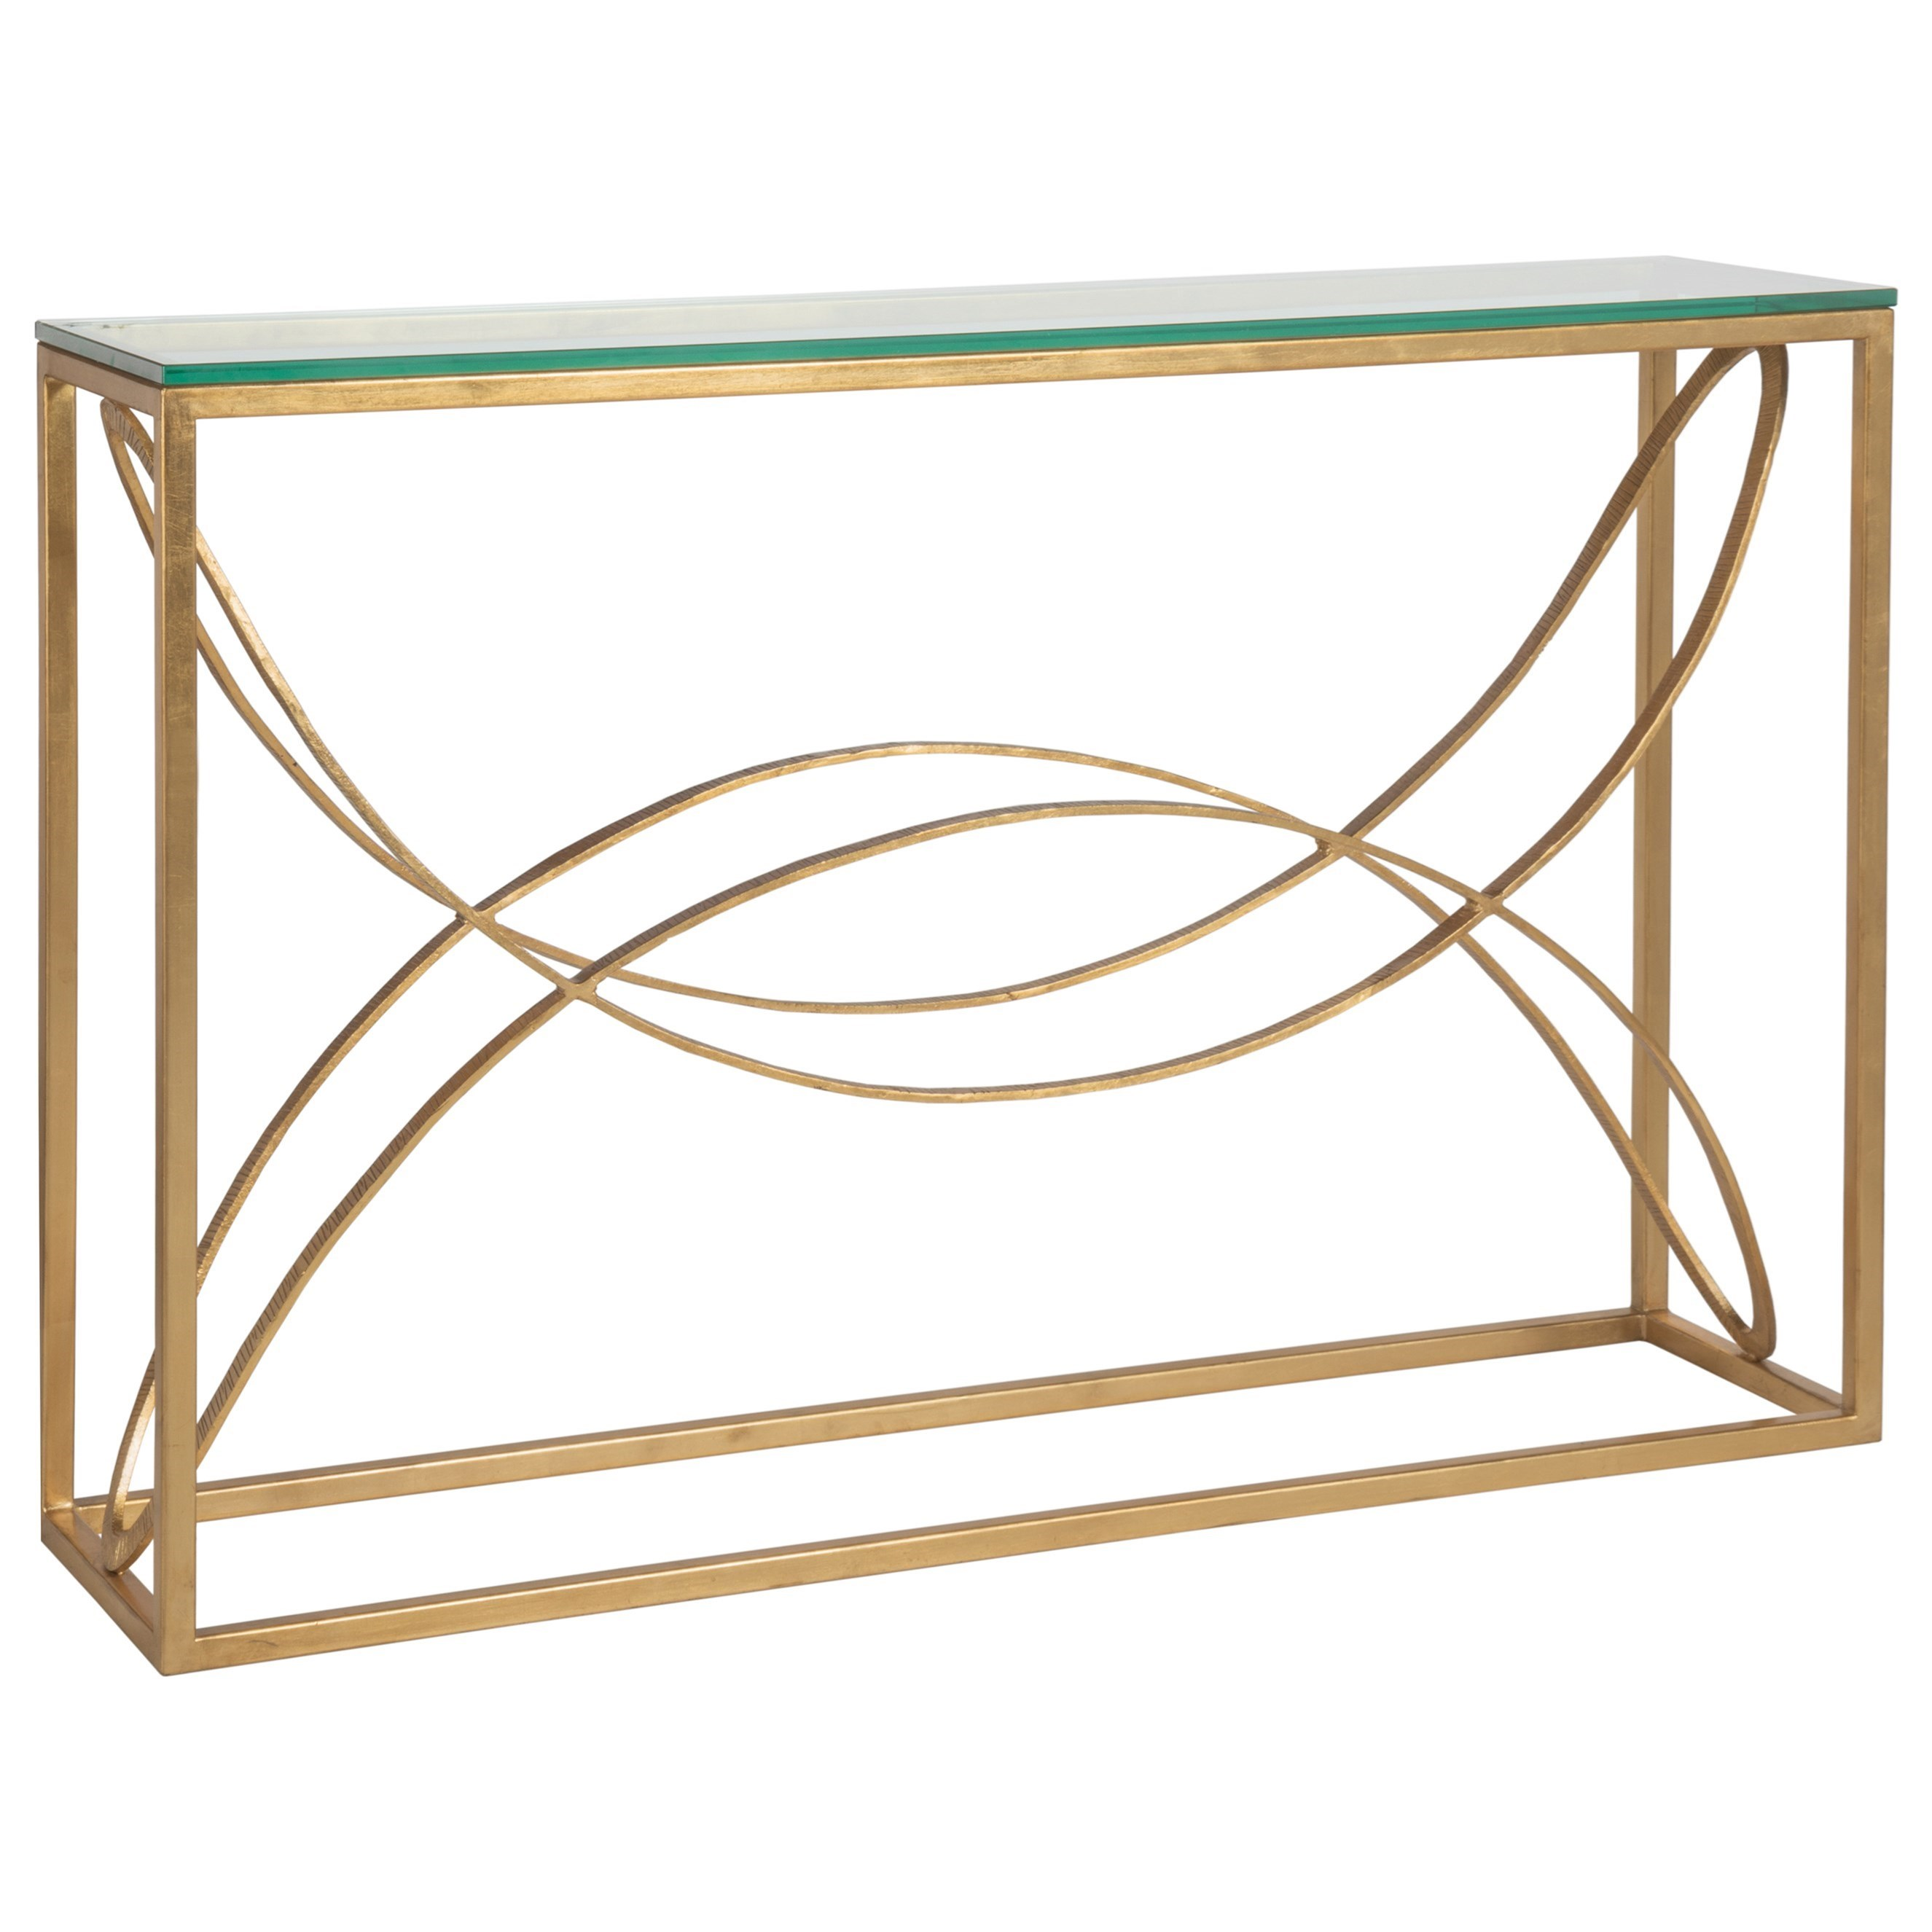 Metal Designs Ellipse Console by Artistica at Alison Craig Home Furnishings